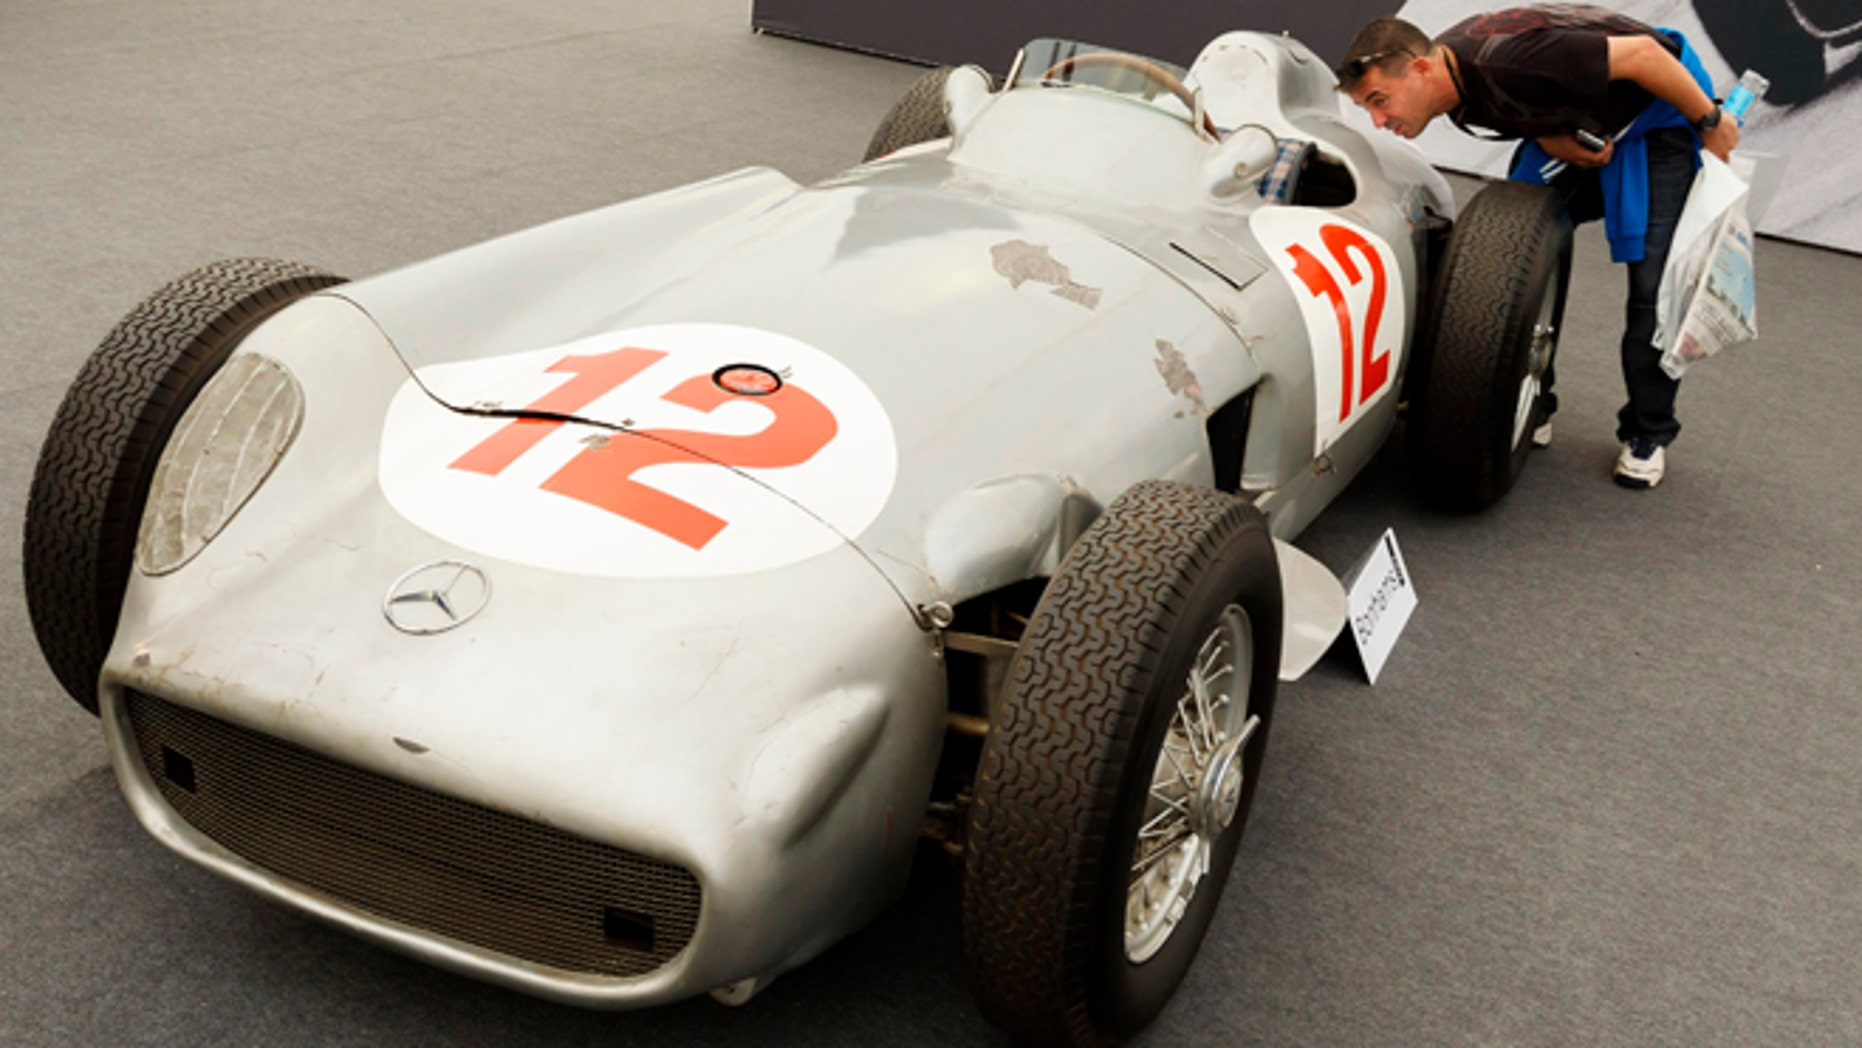 In this photo taken Thursday, July 11, 2013, a man looks inside a 1954 Mercedes-Benz W196 single-seater race car once driven by Formula One legend Juan Manuel Fangio as it is displayed by an auction house at the Festival of Speed in Goodwood, near Chichester, England. Fangio, who drove the car to victories in the 1954 German and Swiss Grand Prix race, sold for 19.6 million pounds ($29.6 million) at auction on Friday. (AP Photo/PA, Chris Ison) UNITED KINGDOM OUT, NO SALES, NO ARCHIVE